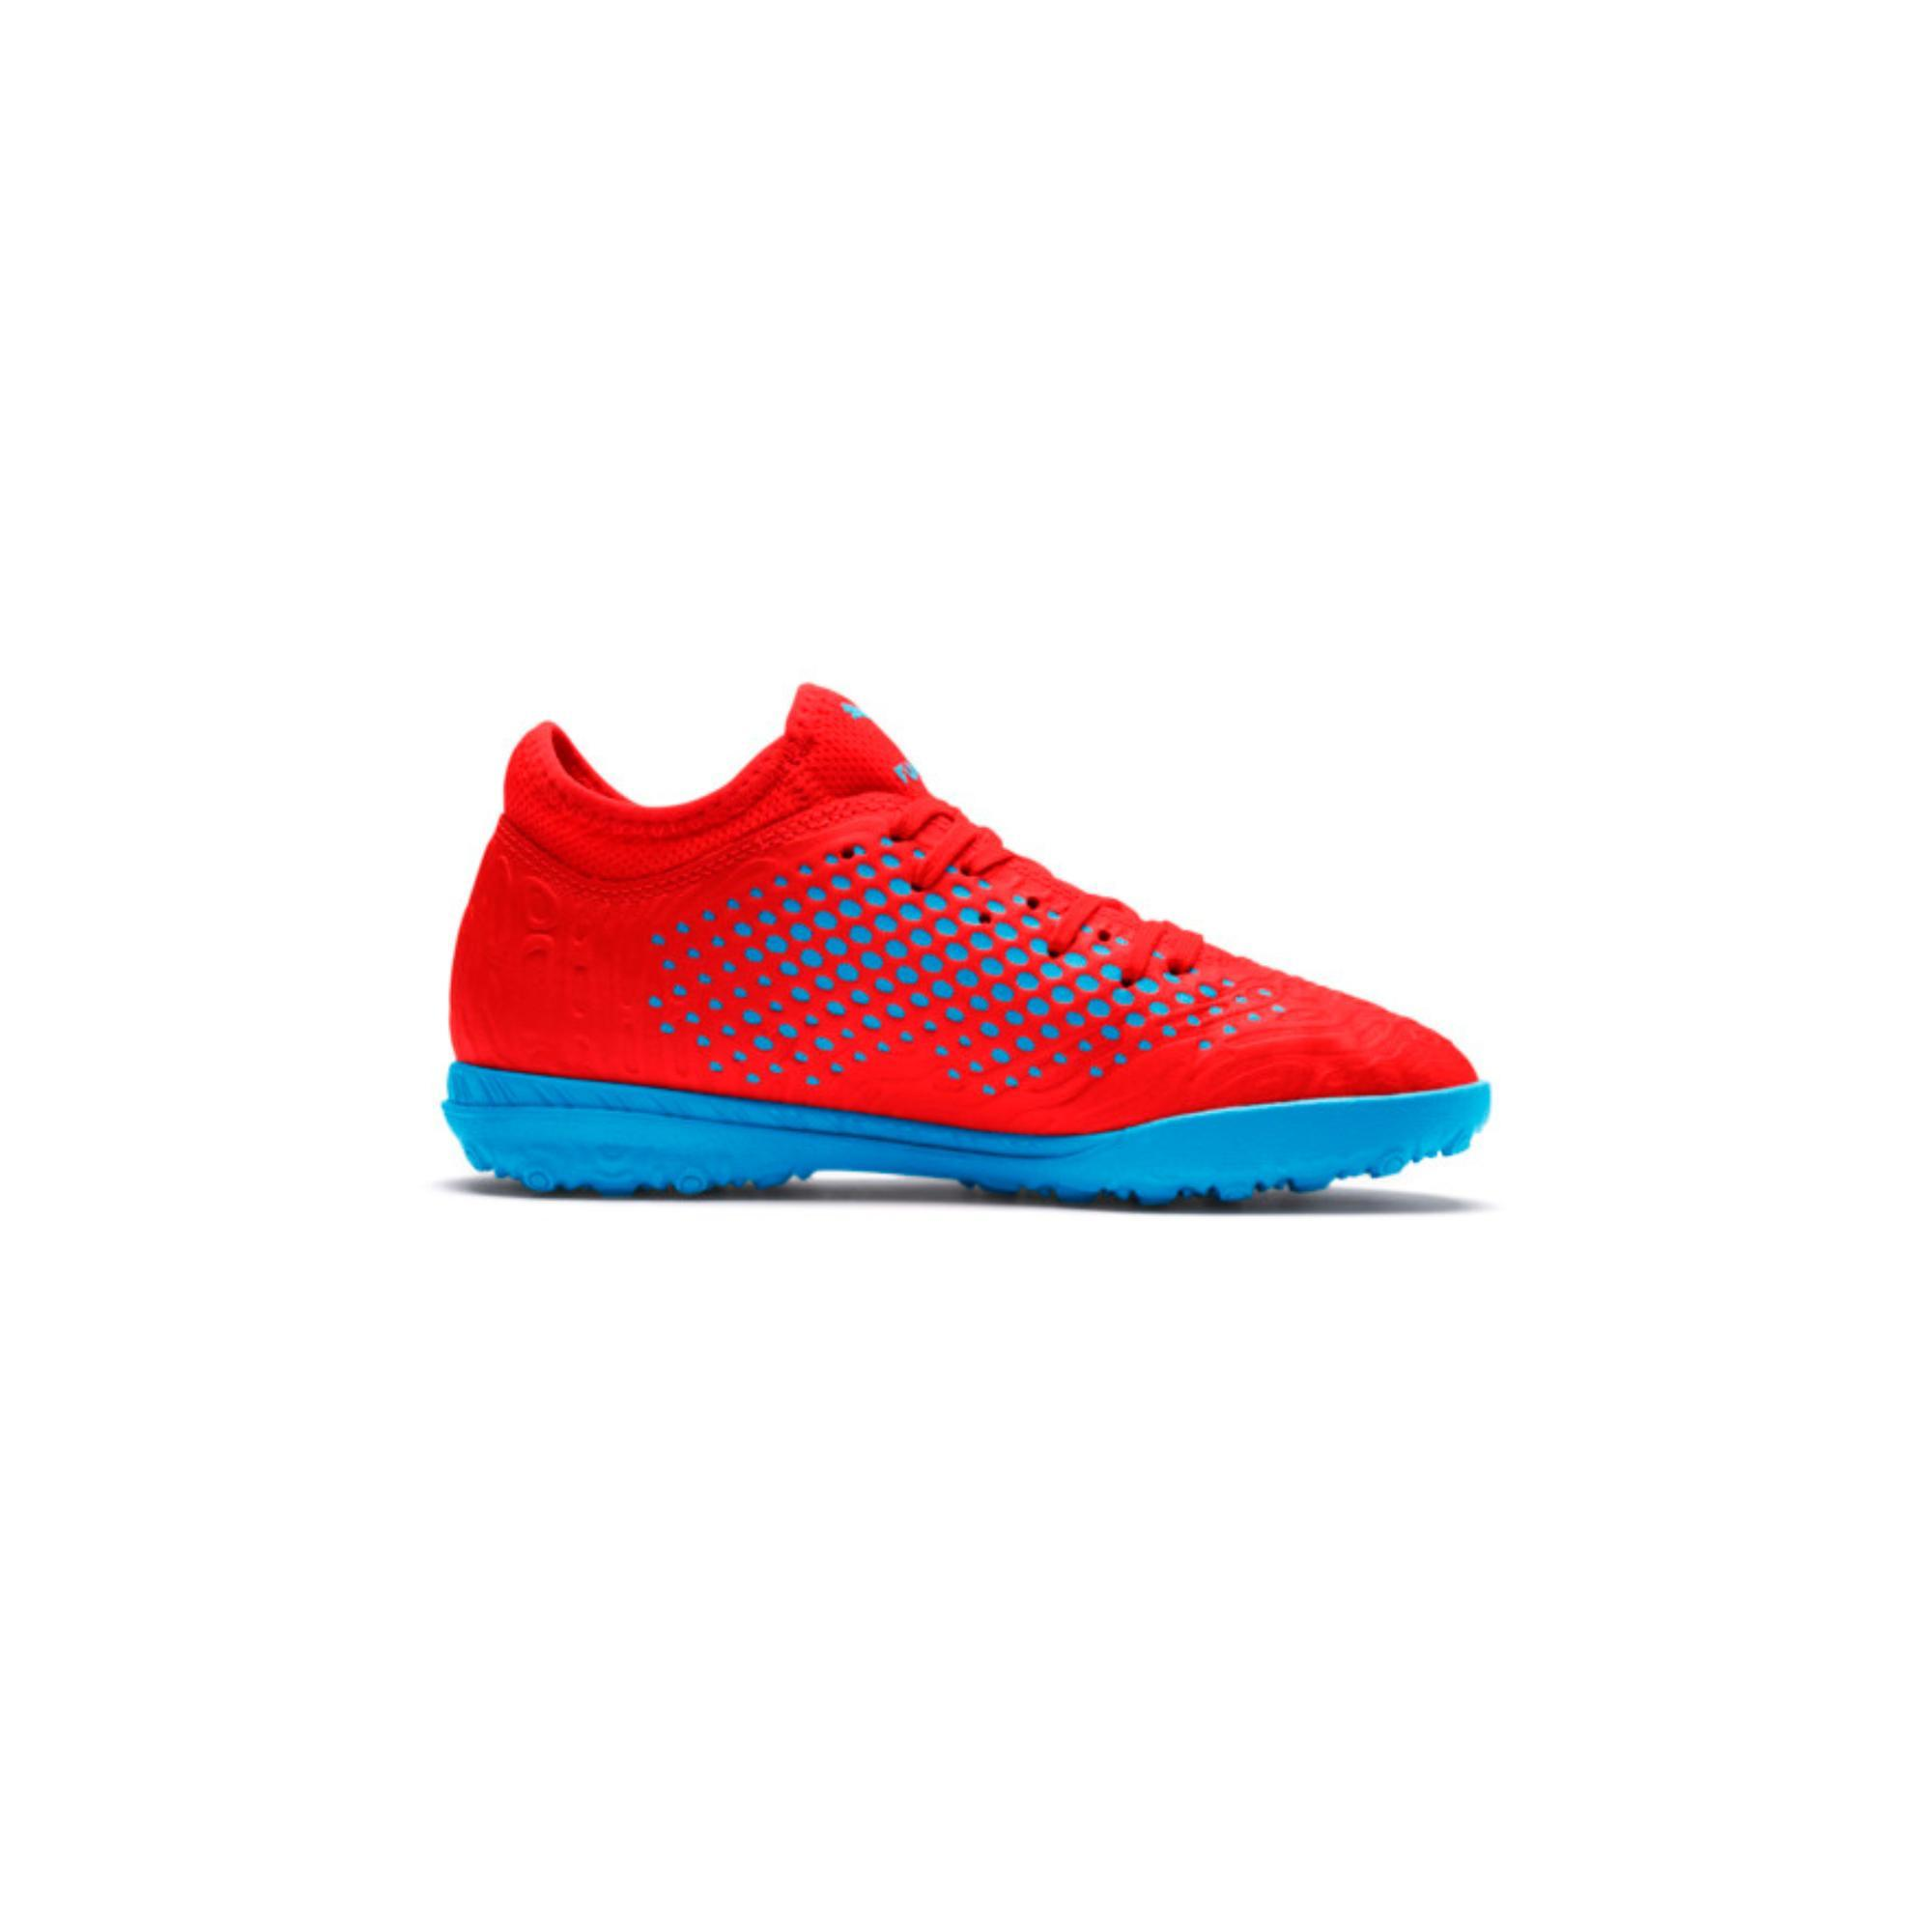 hot sale online low price latest discount Chaussures de Football pas cher: Kipsta, Nike, Adidas, Puma ...